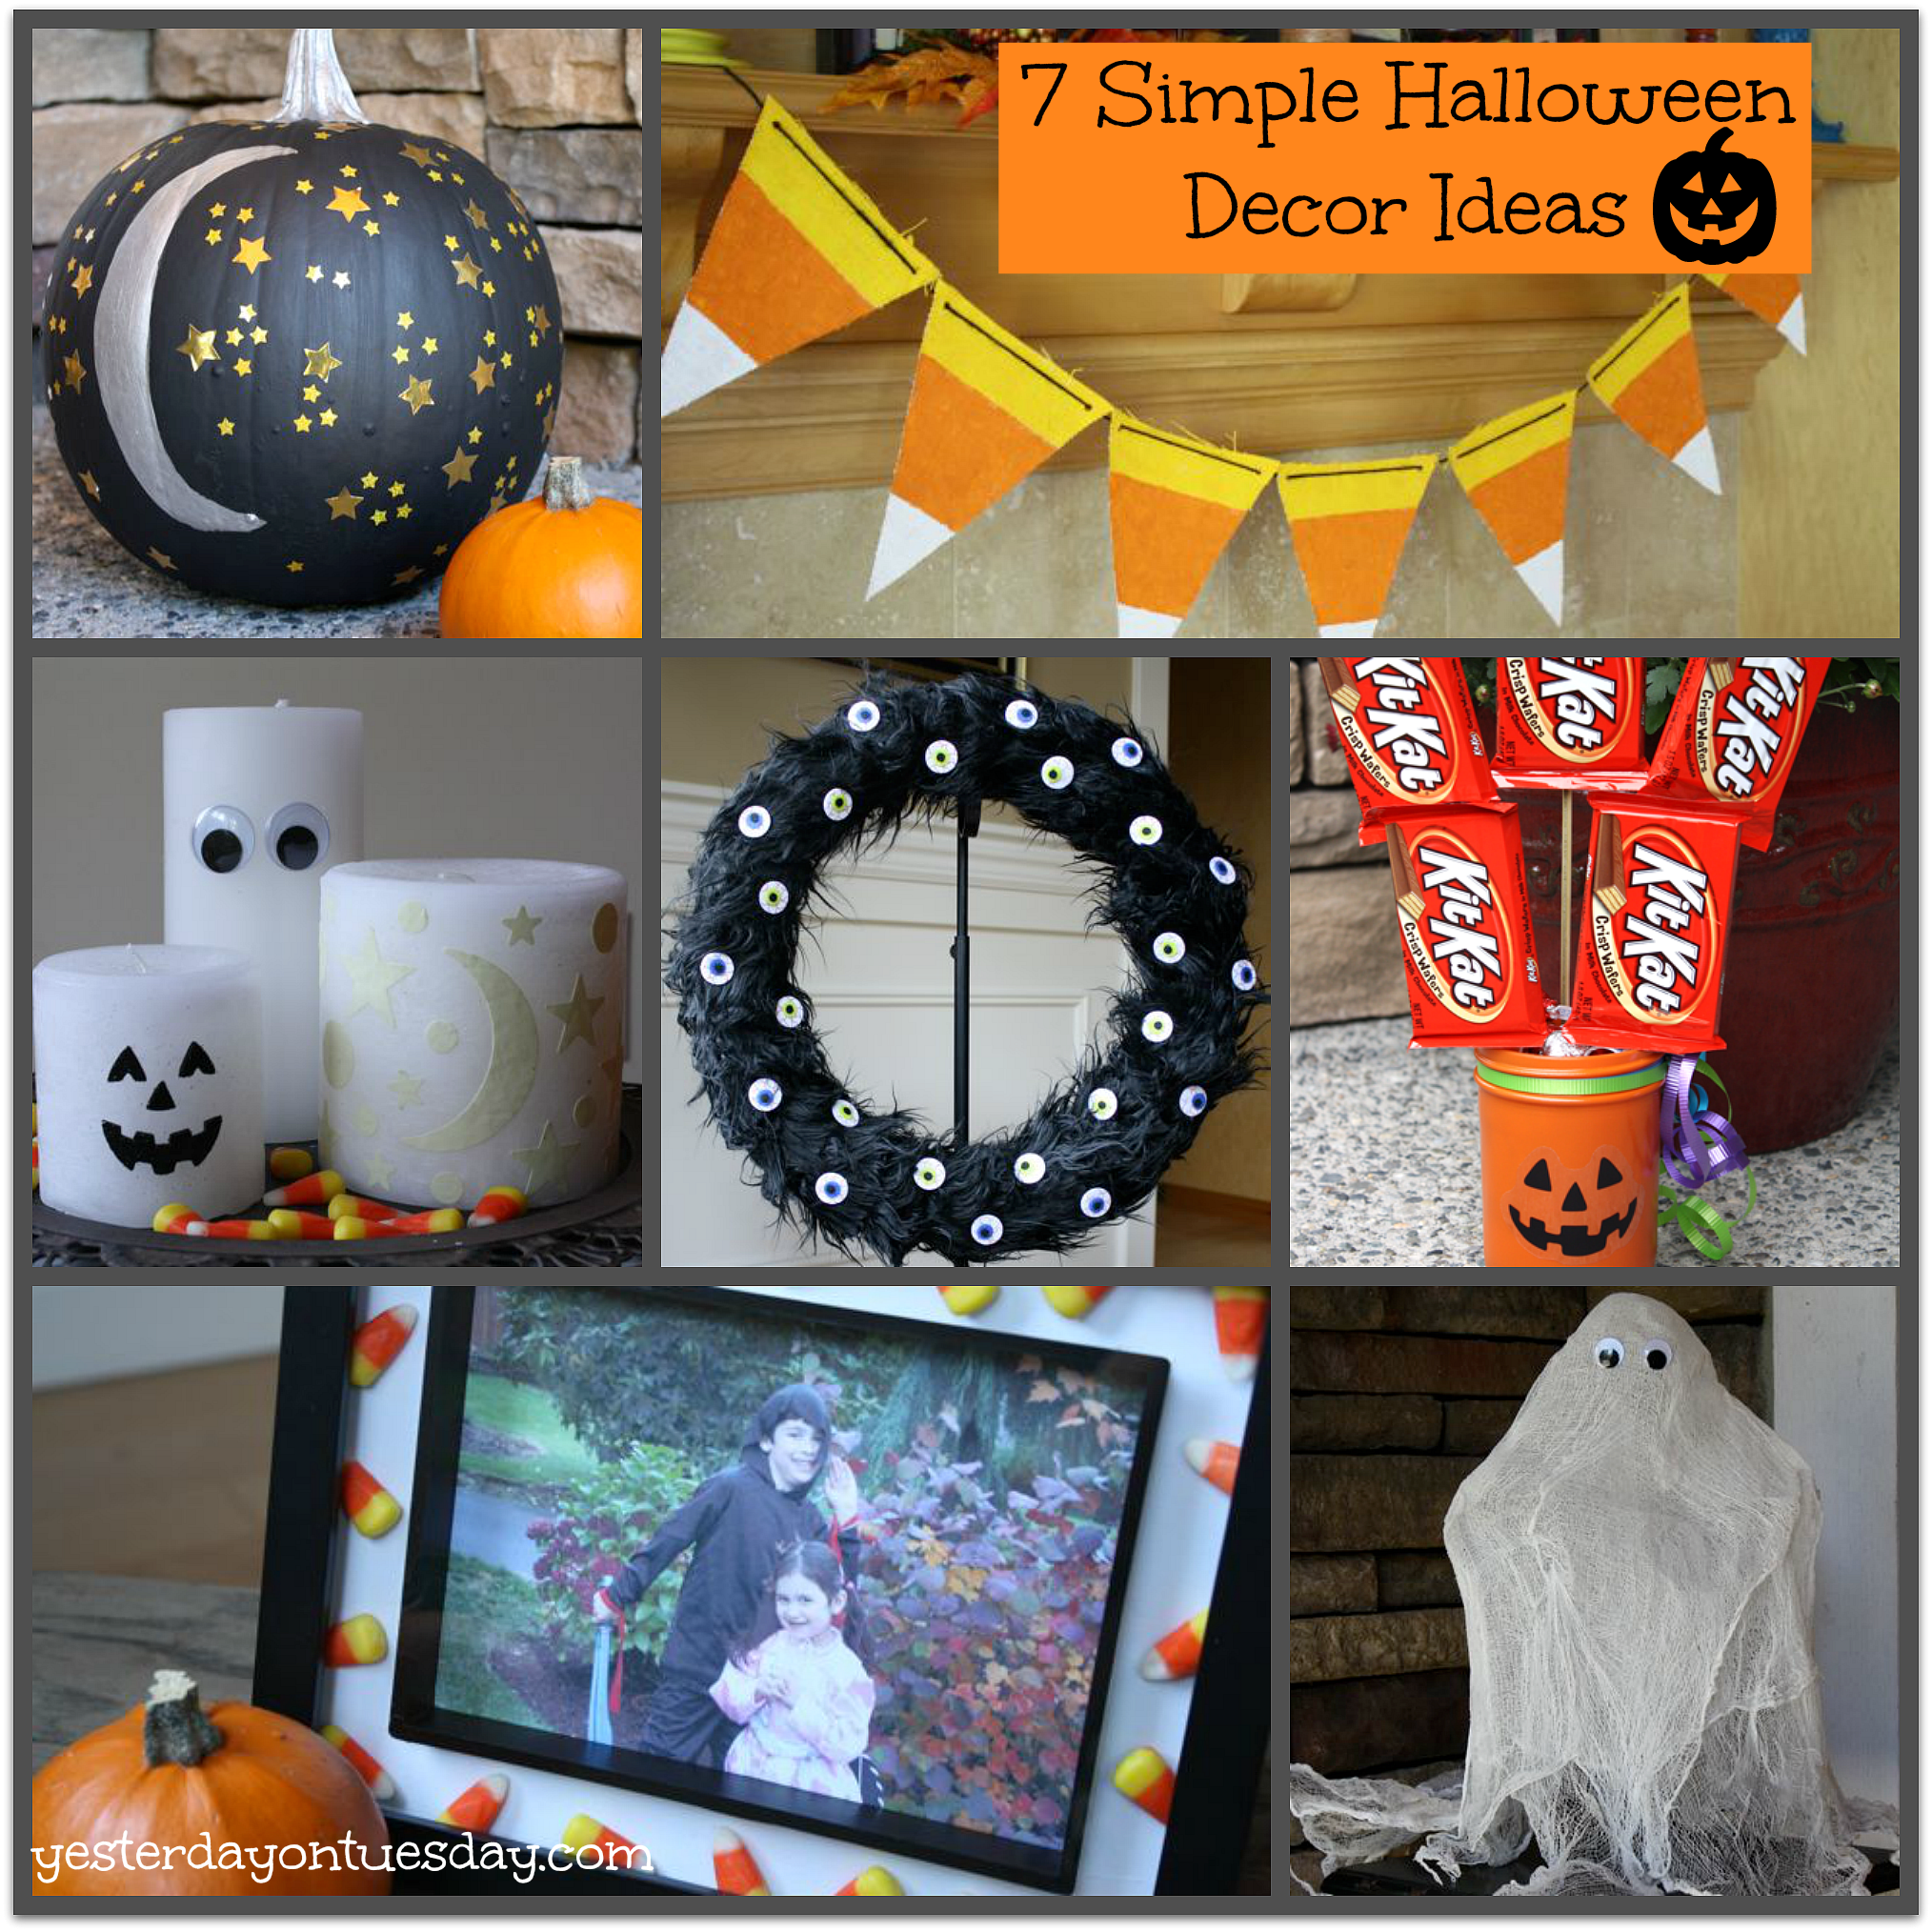 7 Simple Halloween Decor Ideas Yesterday On Tuesday